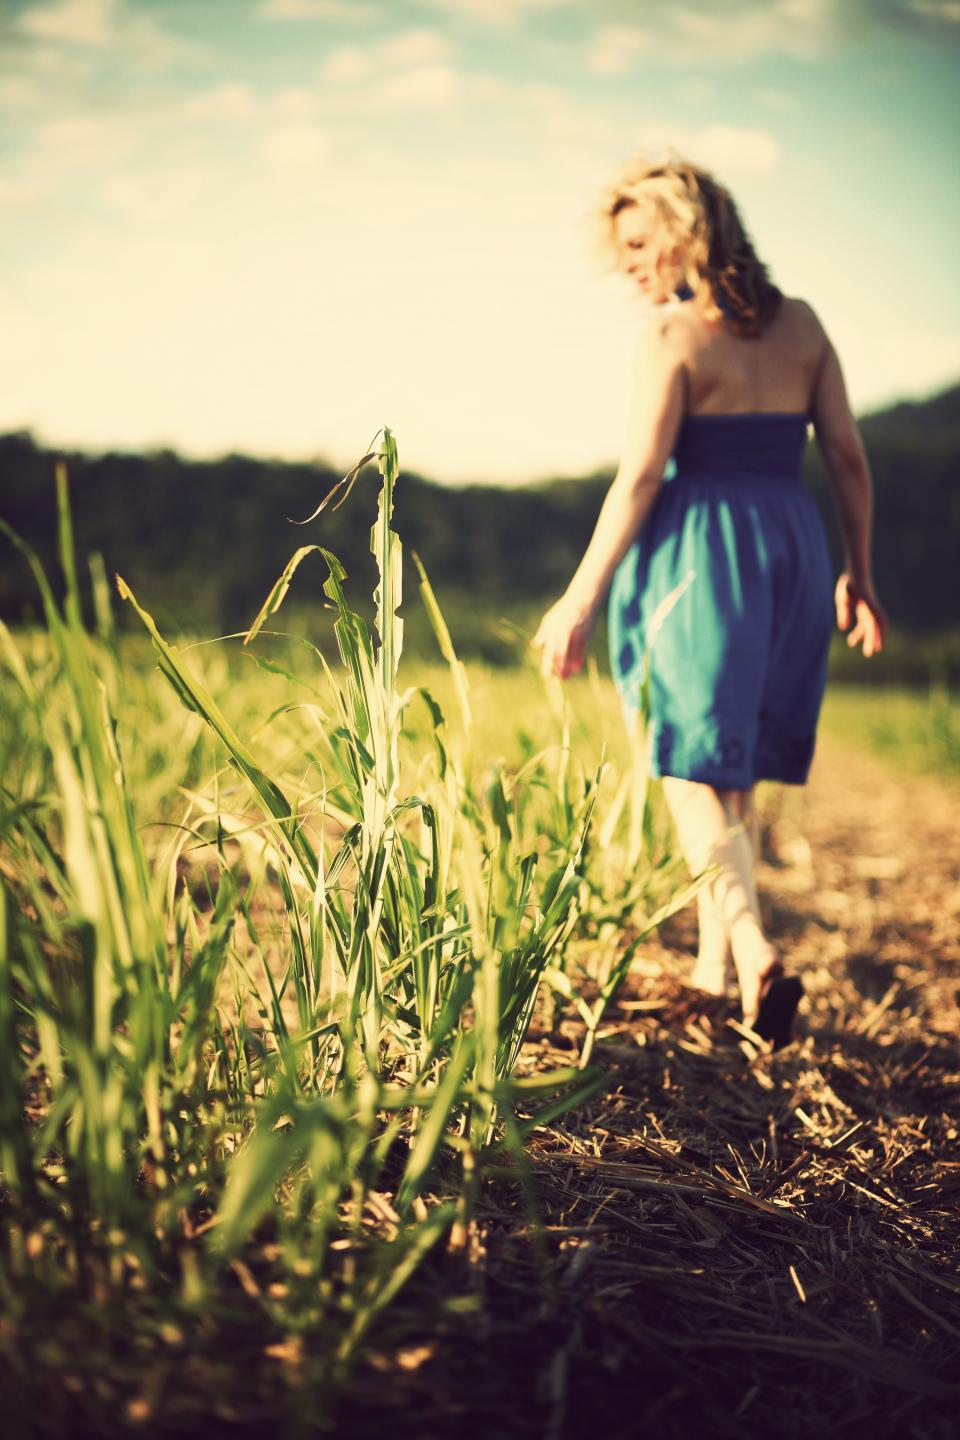 girl, woman, field, grass, nature, sunshine, sunny, summer, dress, fashion, people